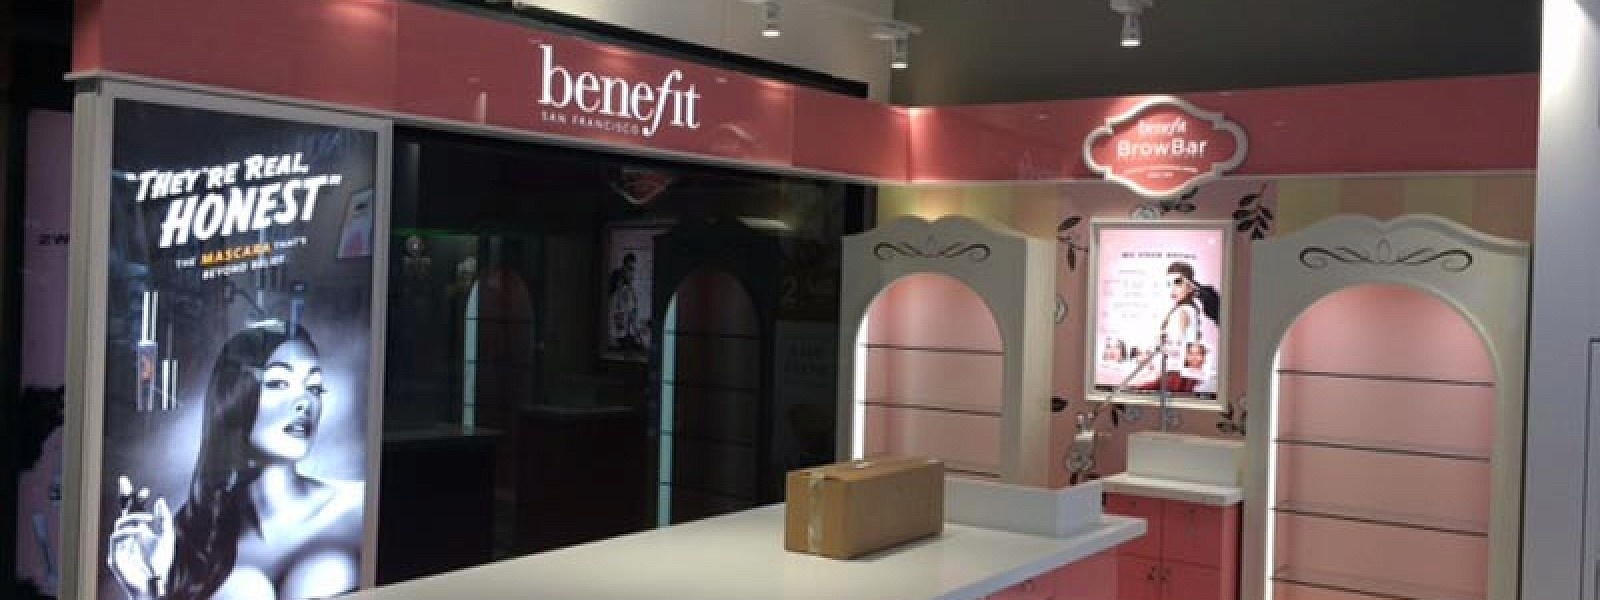 Benefit House of Fraser Sutton Coldfield